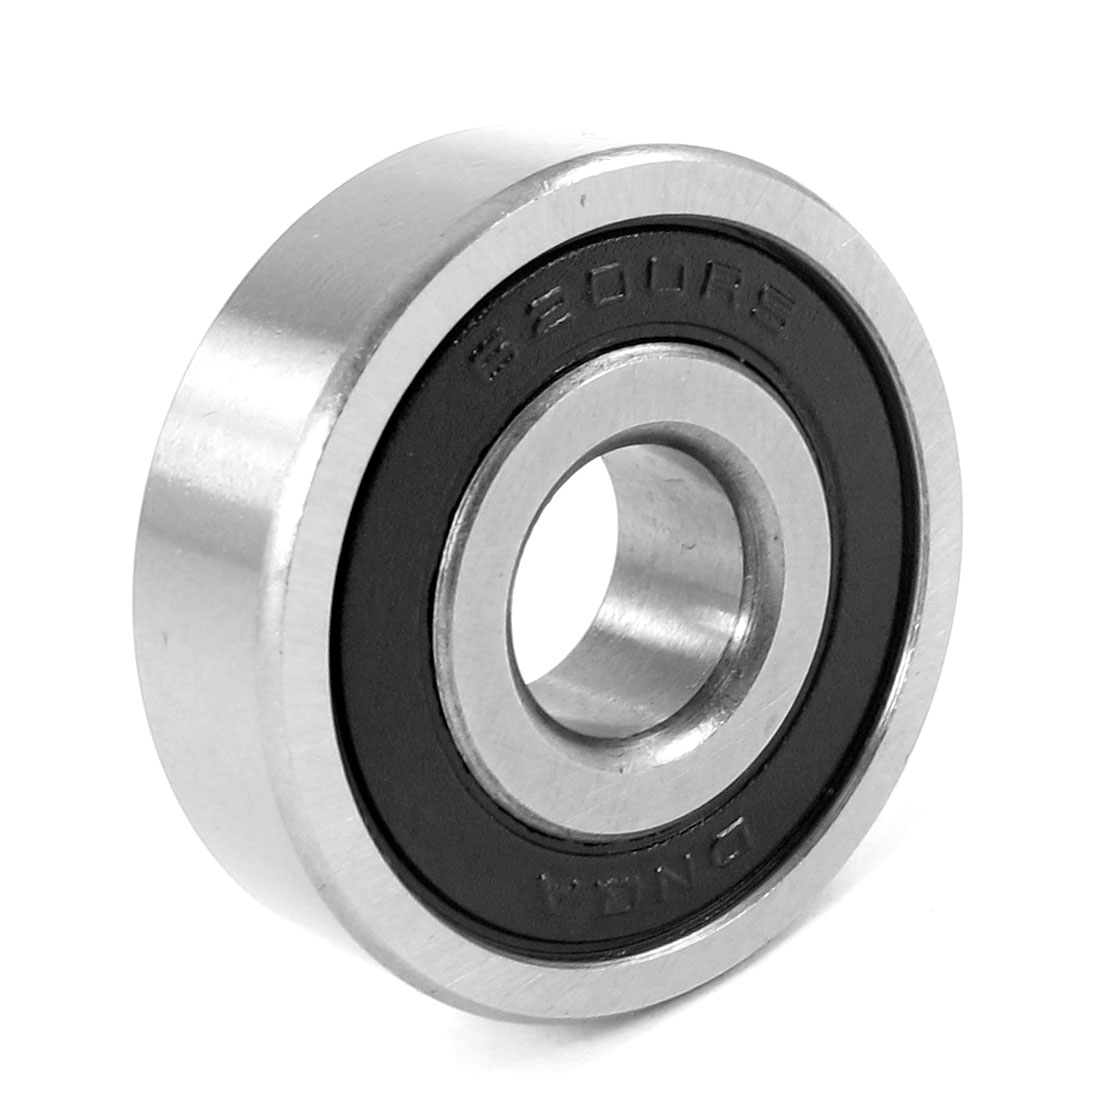 Replacement 6200RS Roller-Skating Deep Groove Ball Bearing Black 30mm x 10mm x 9mm